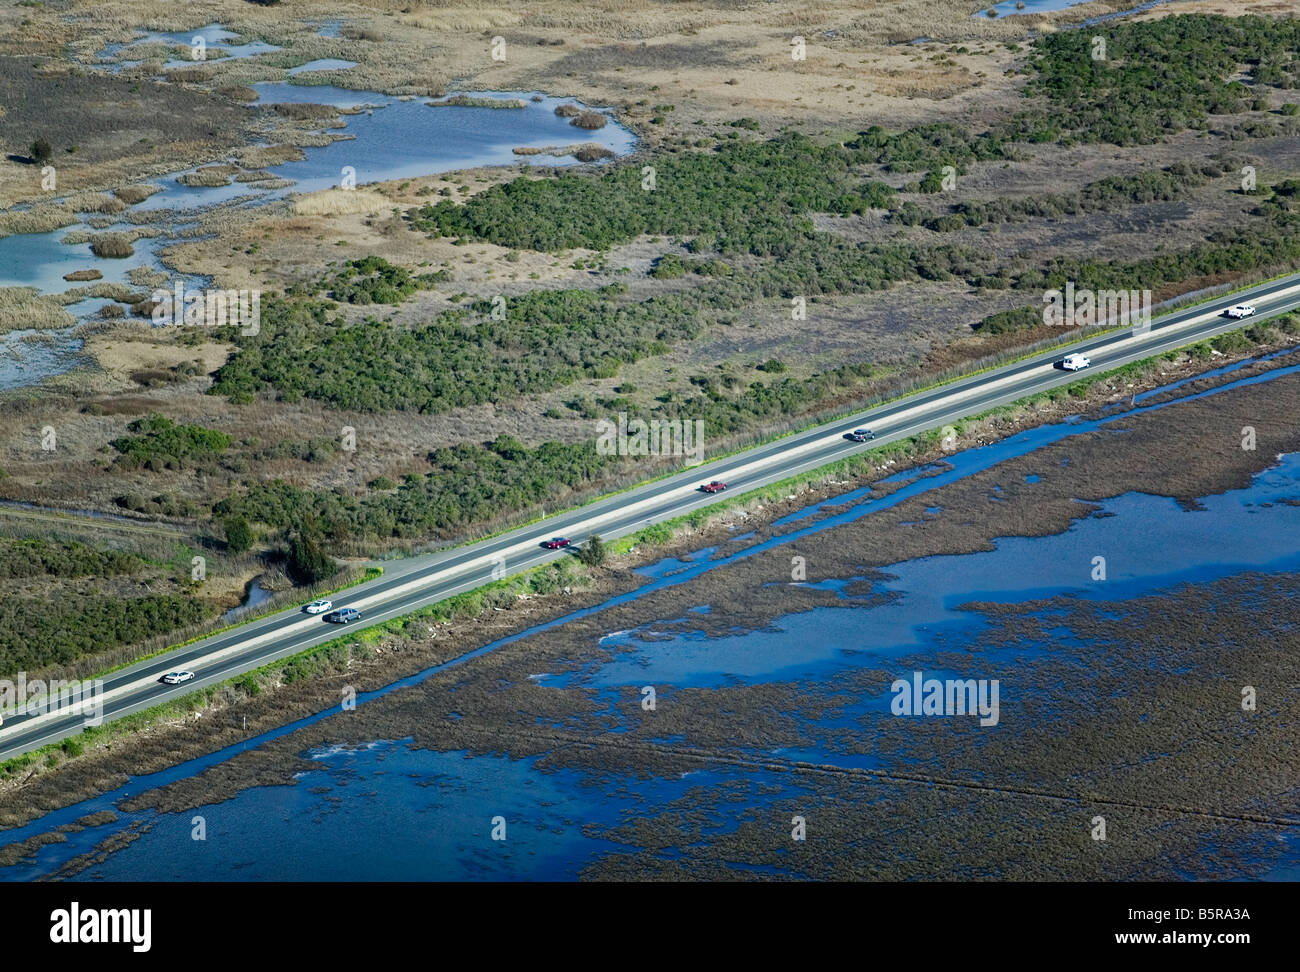 aerial view above truck and cars highway 37 Napa county California - Stock Image